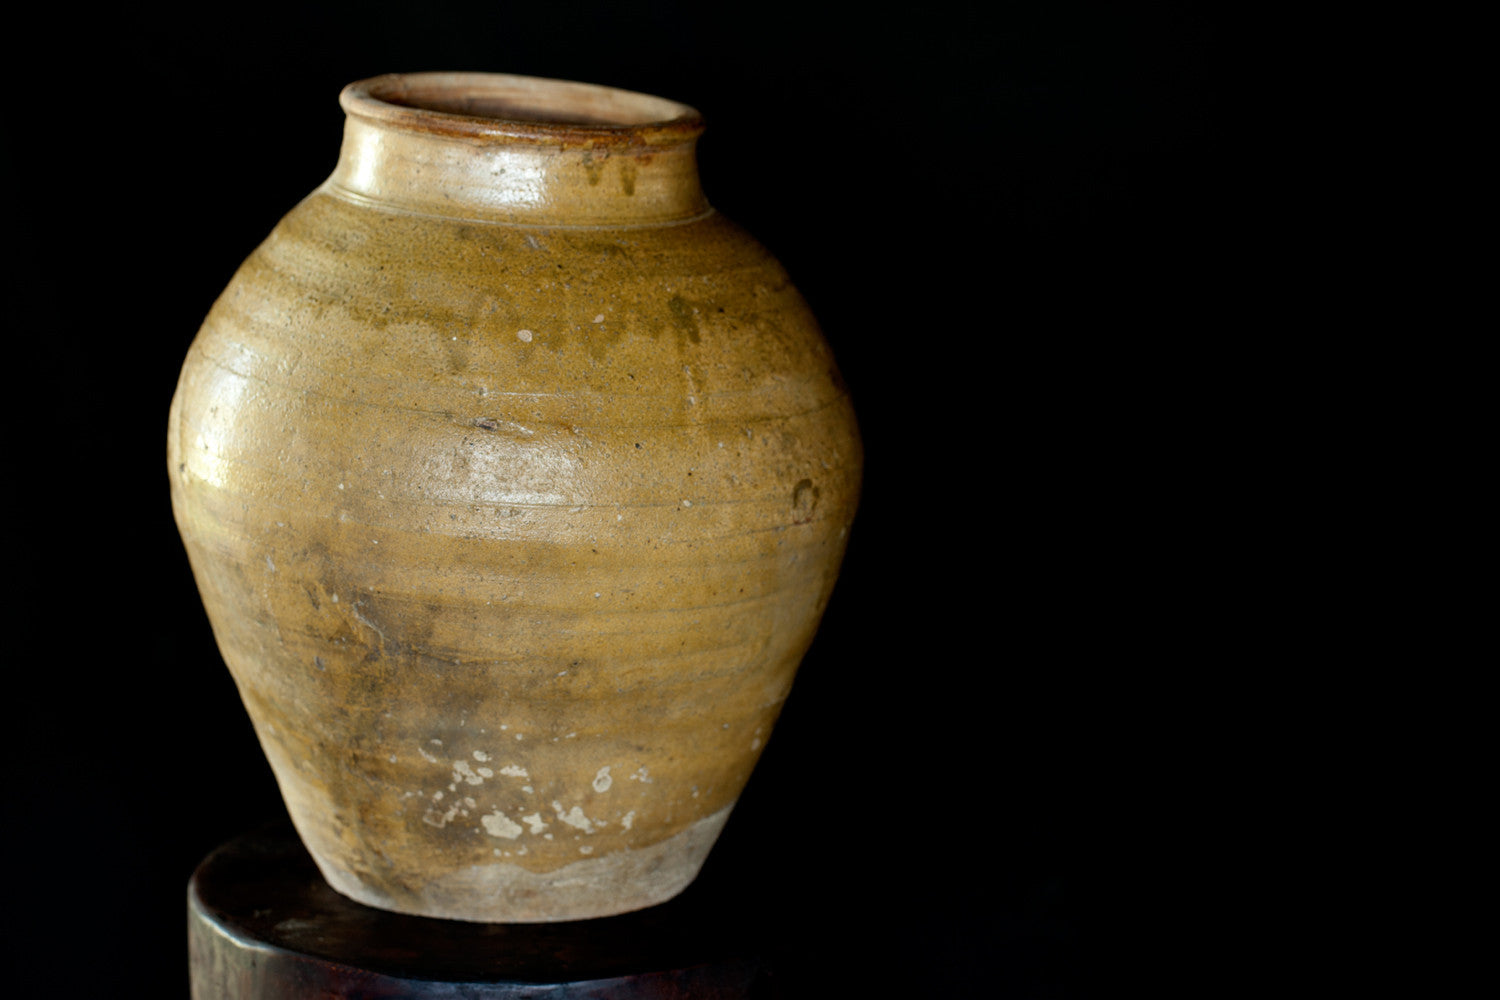 Late 18th - Early 19th Century Vietnamese Yellow Glazed Storage Jar